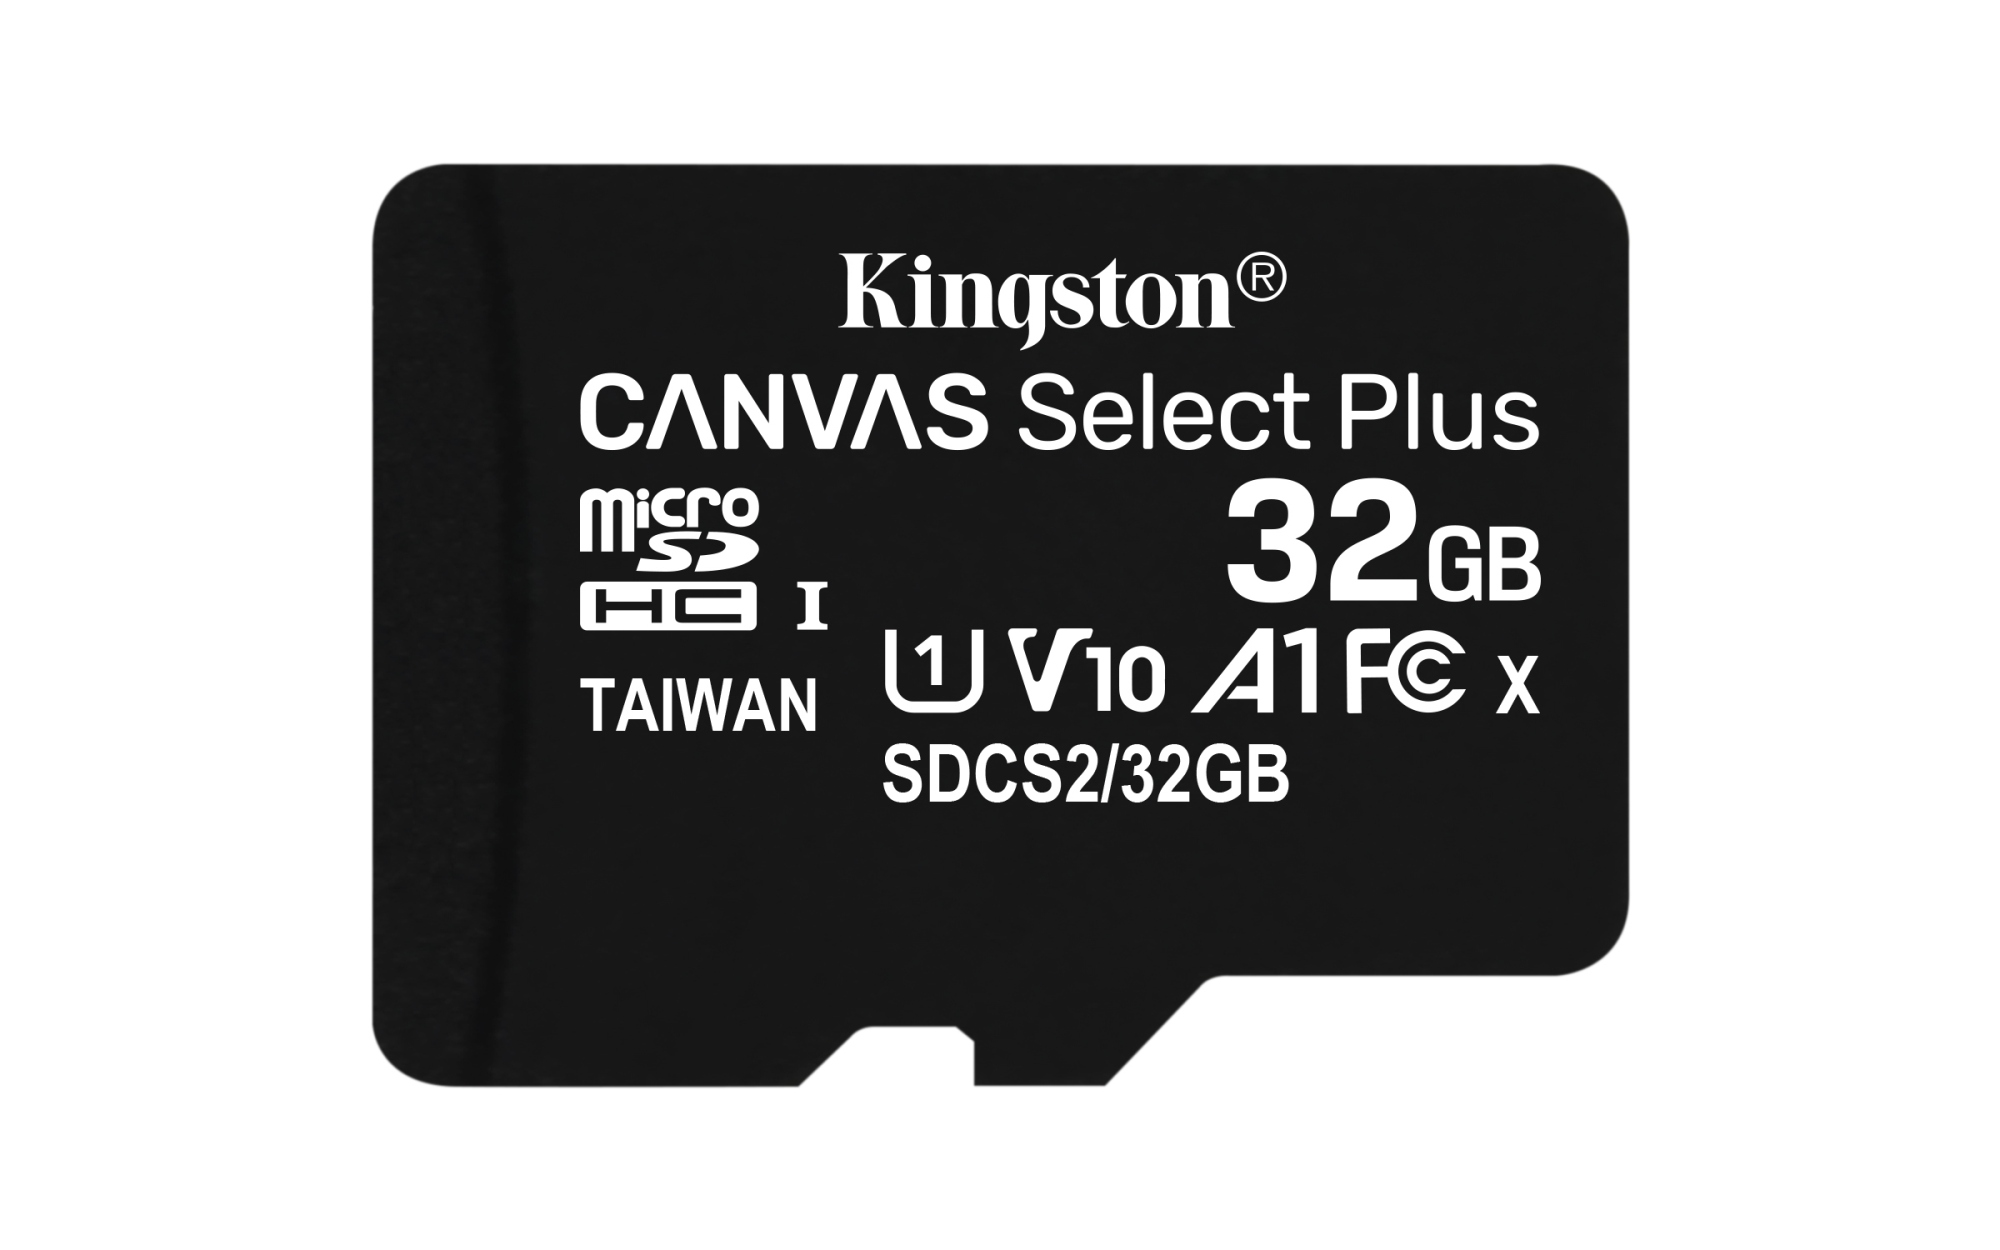 CANVAS SELECT PLUS MEMORIA FLASH 32 GB MICROSDHC CLASE 10 UHS-I